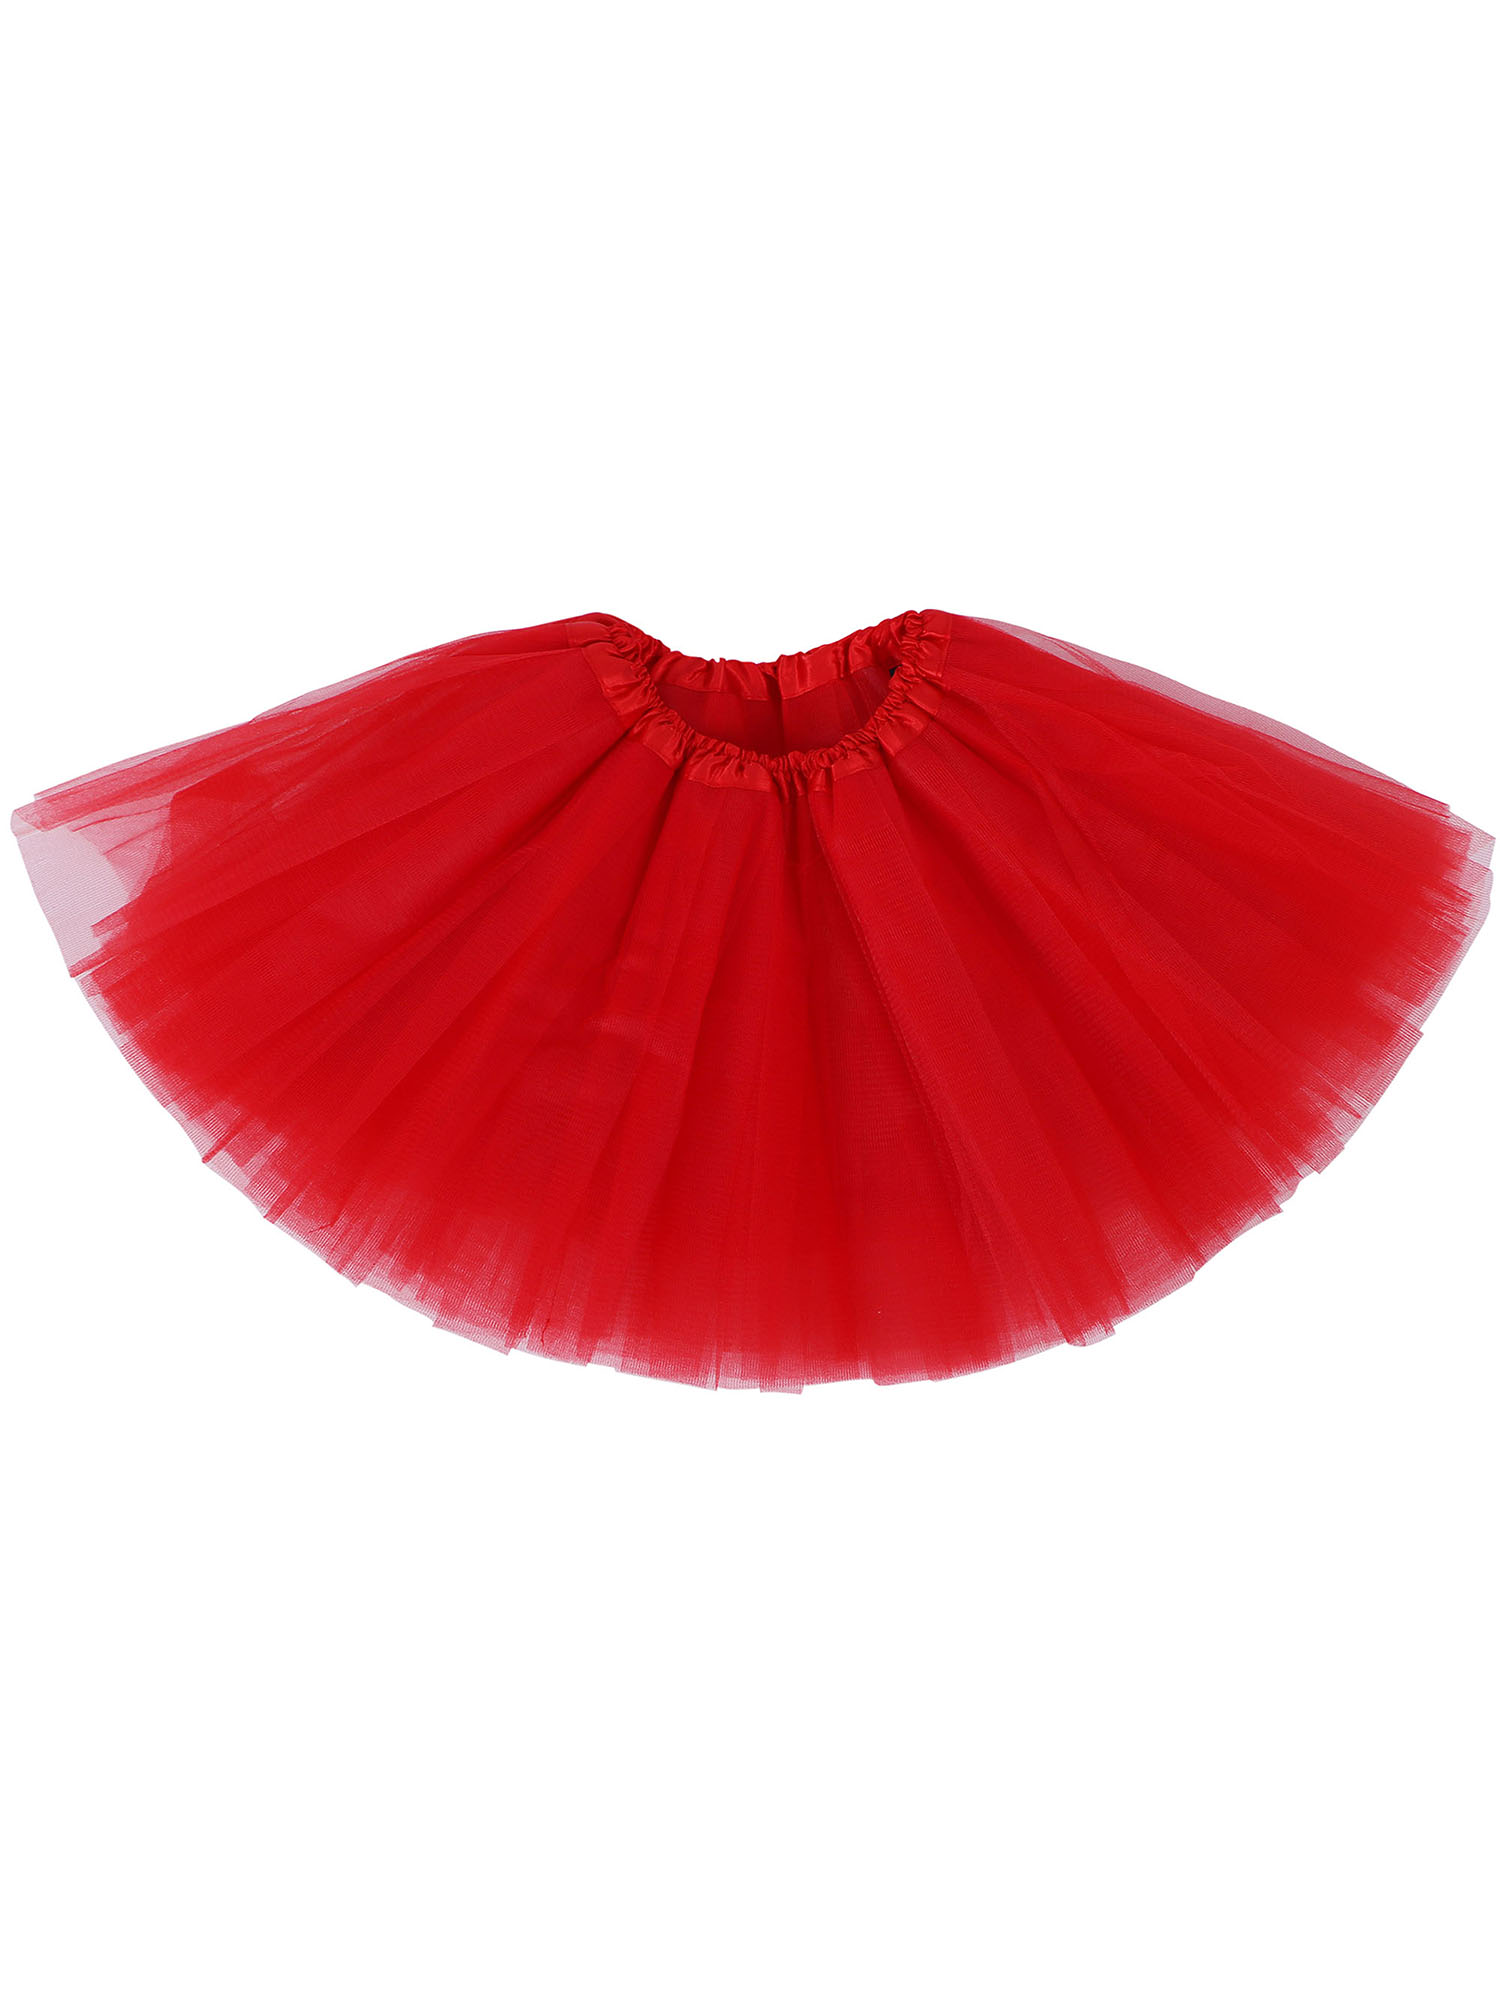 Girl Cute Tulle Dance Tutu Skirt for Dress Up & Fairy Costumes,Red